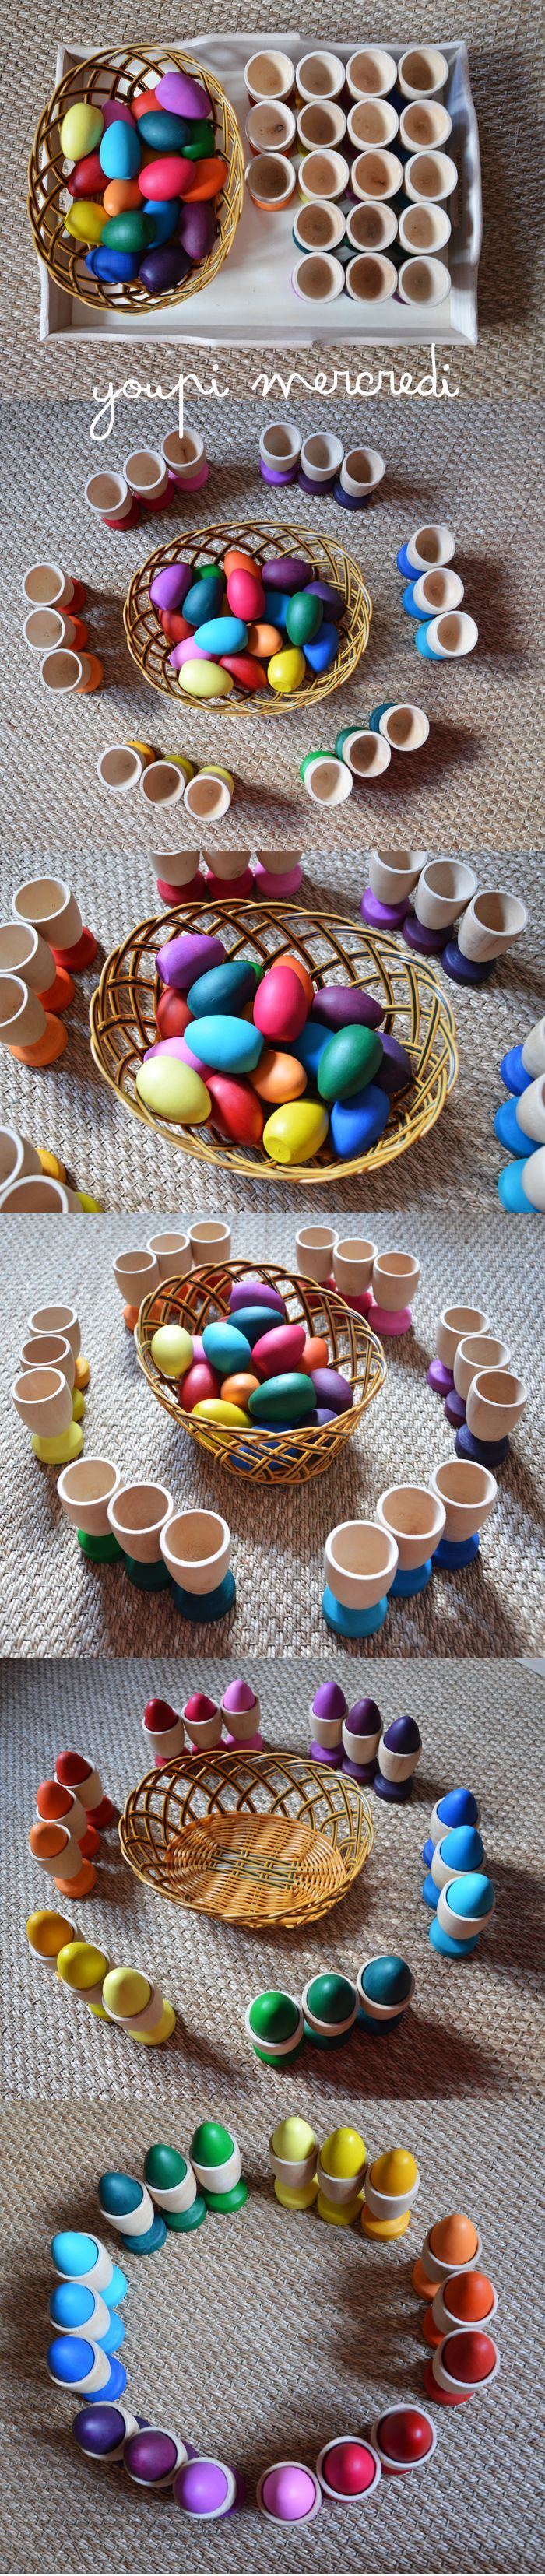 Egg and Cup color grading color matching. This is a fun Montessori inspired activity